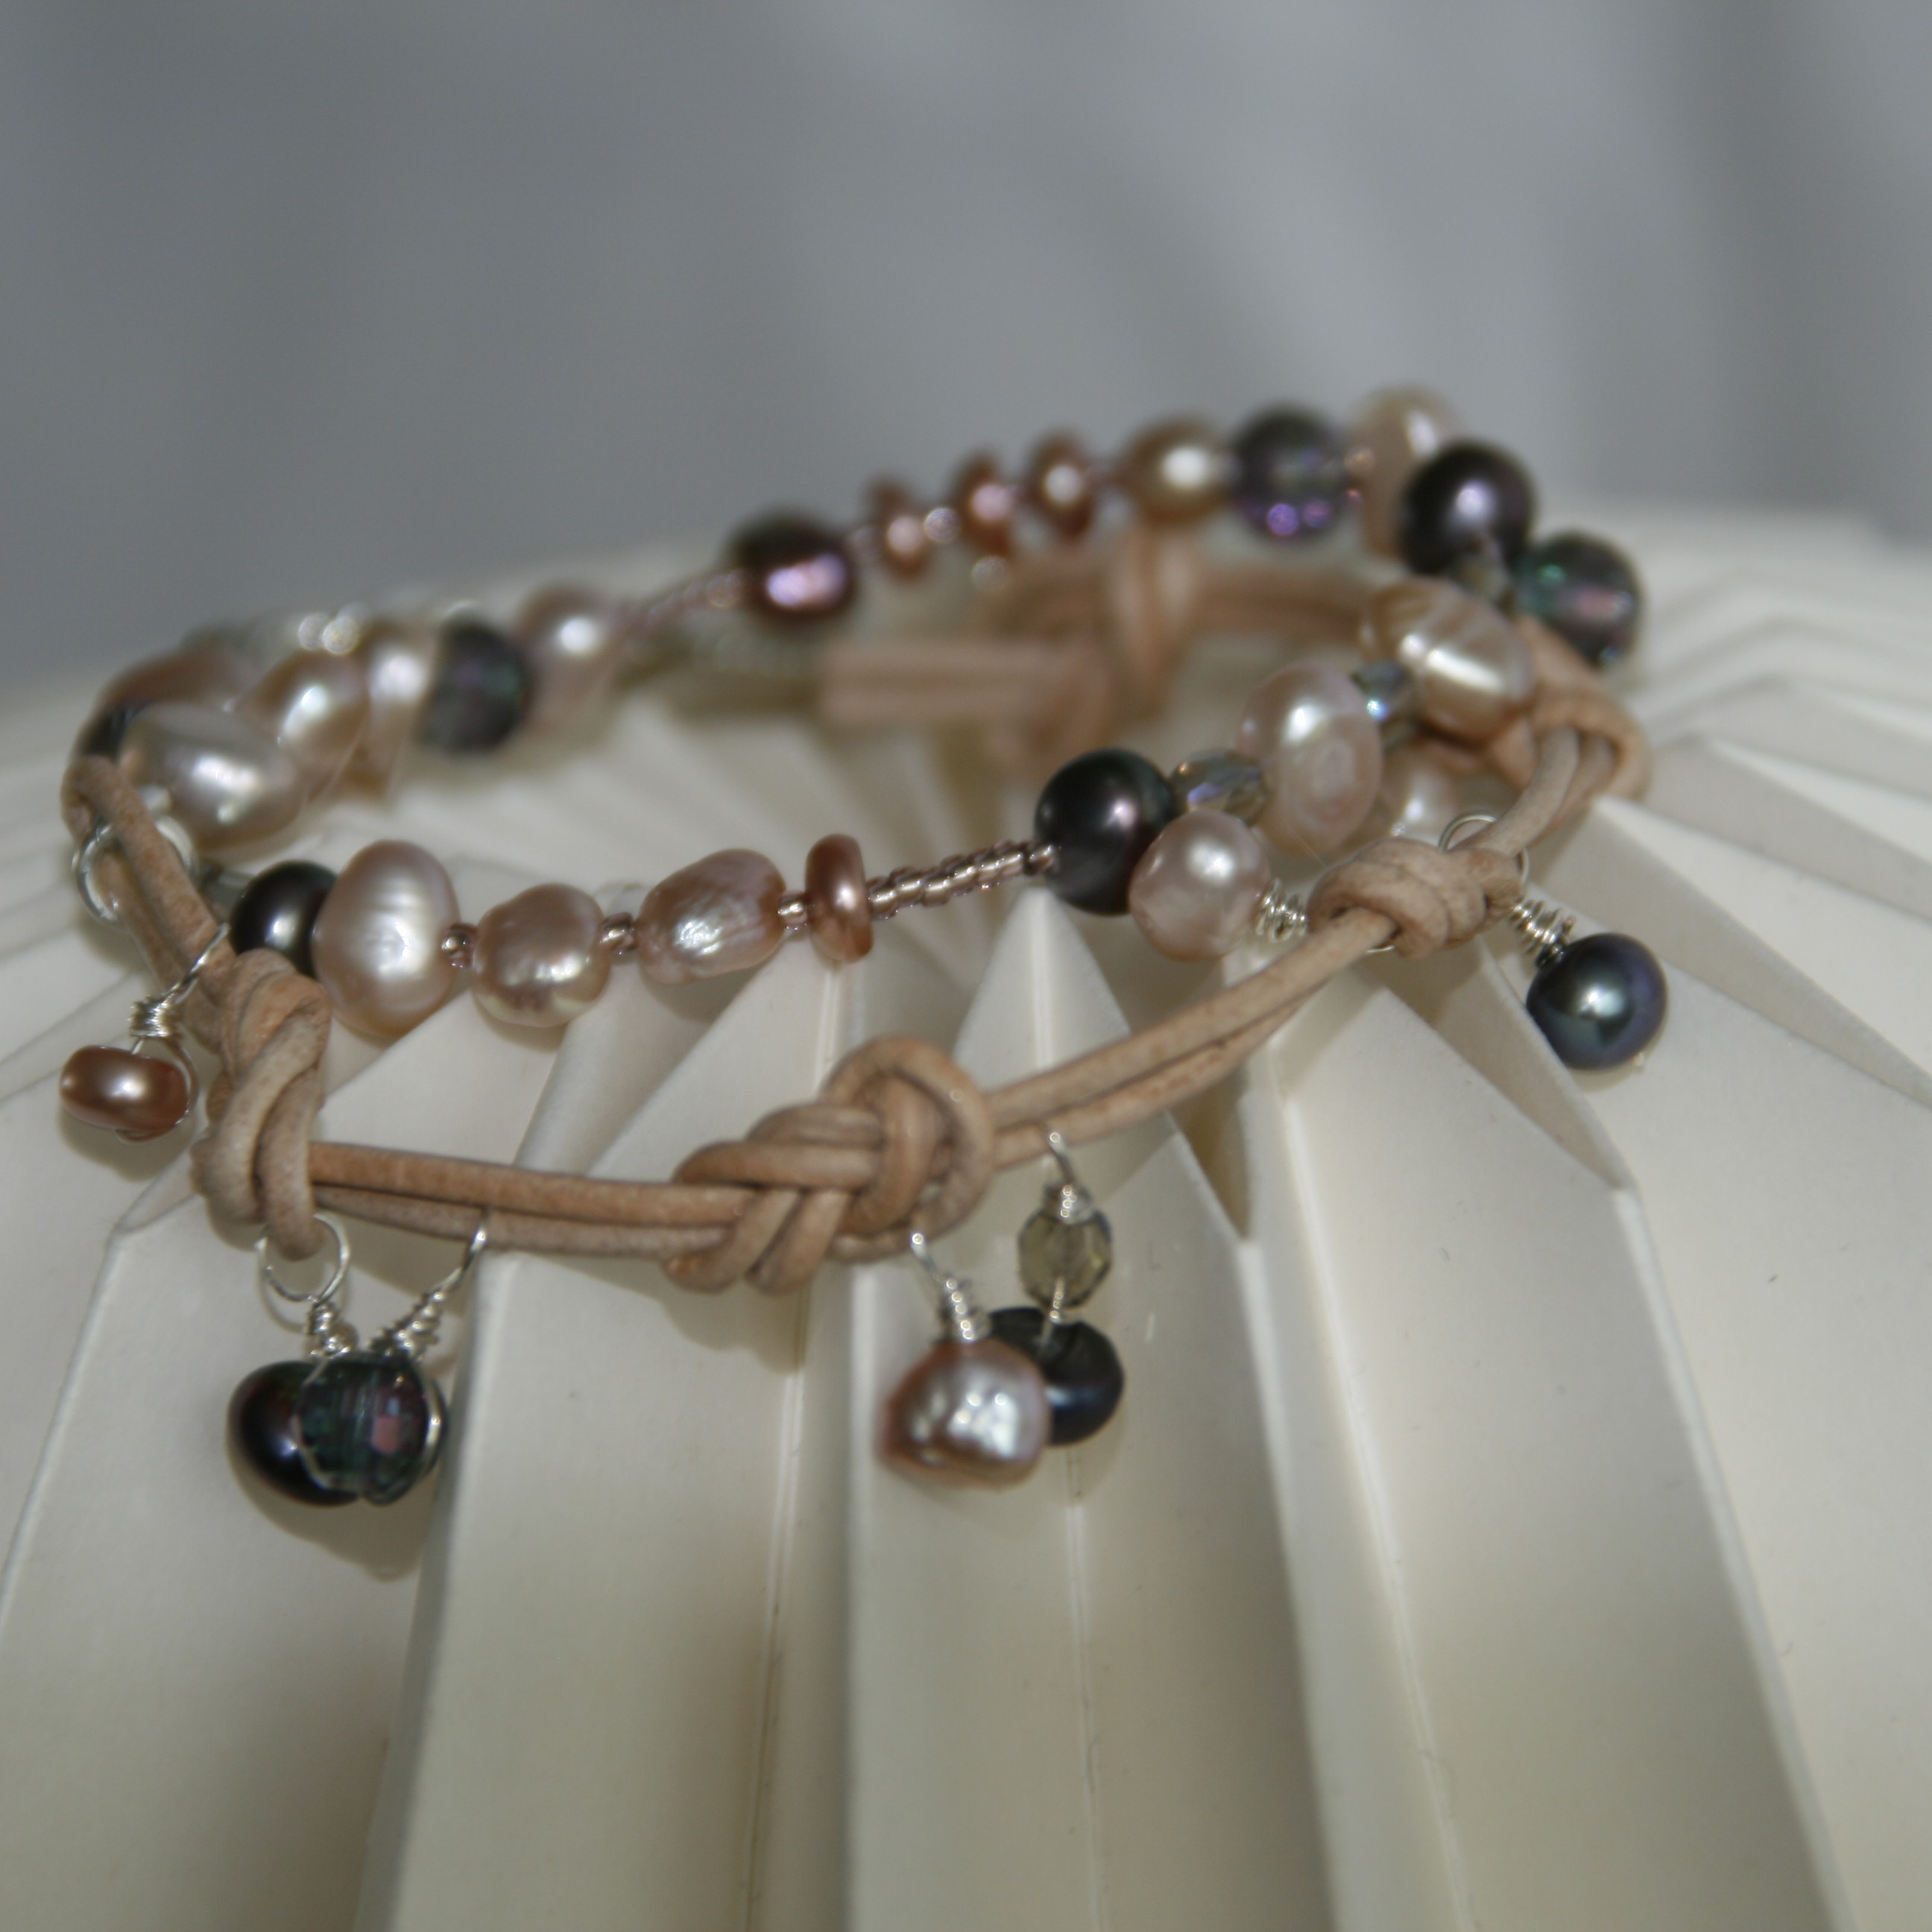 In pearls photo 69